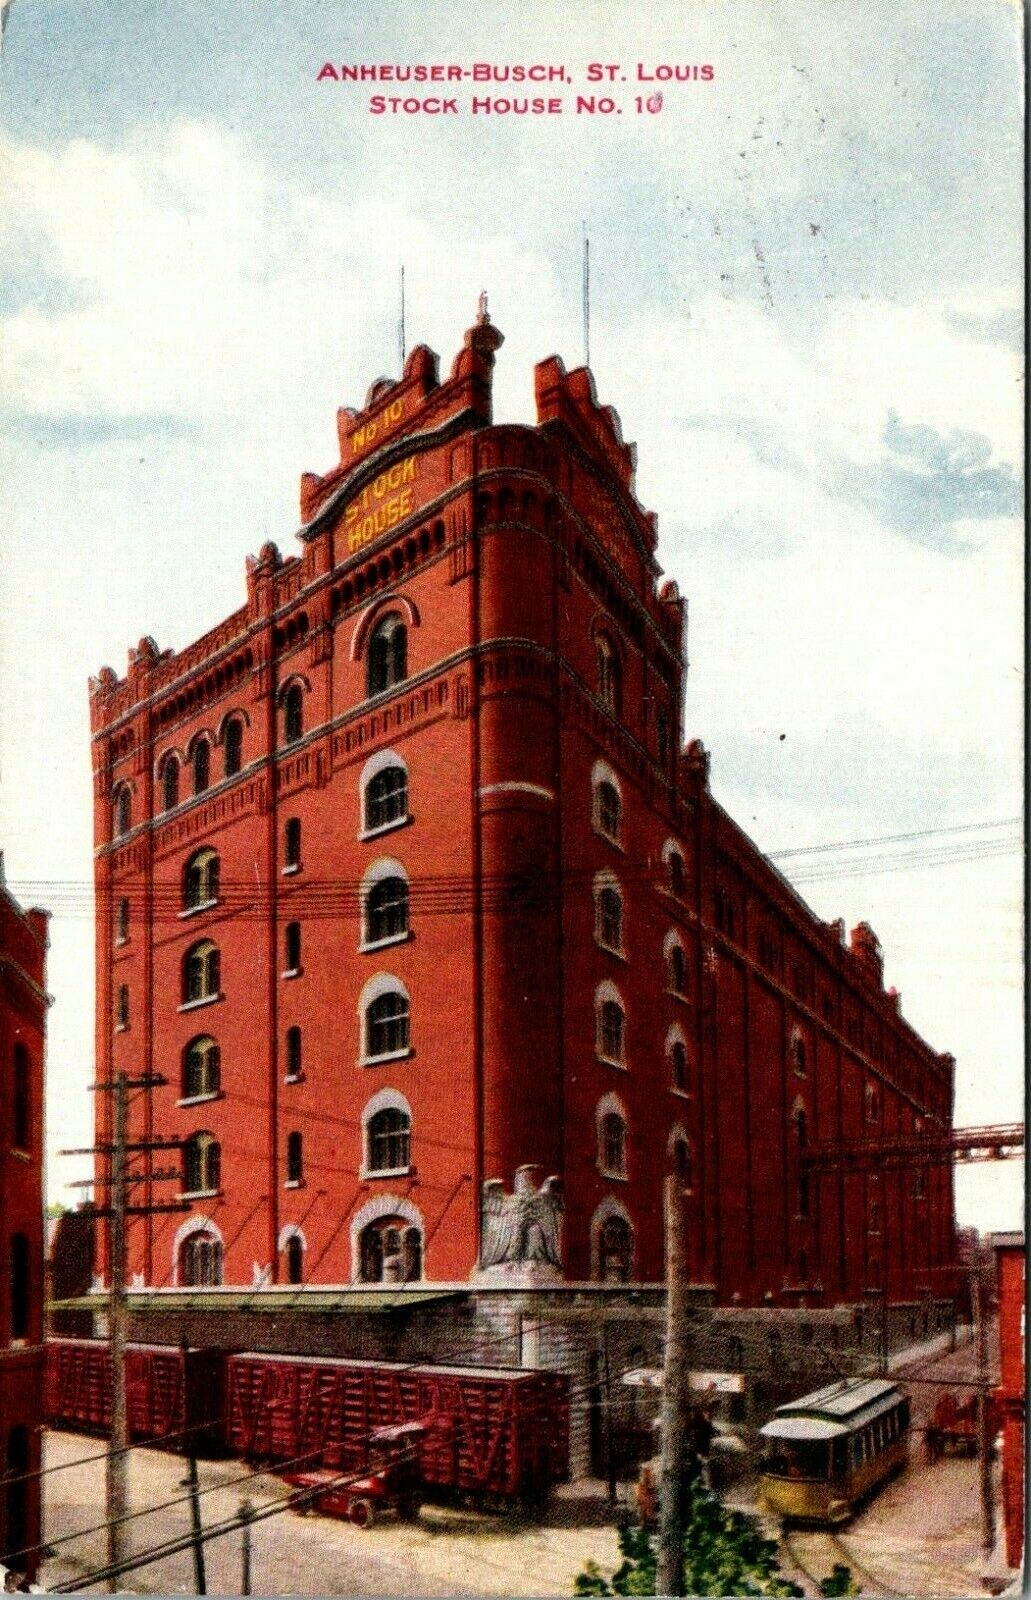 BEER ST LOUIS MISSOURI ANHEUSER BUSCH STOCK HOUSE NUMBER 10 OLD POSTCARD VIEW - $5.99